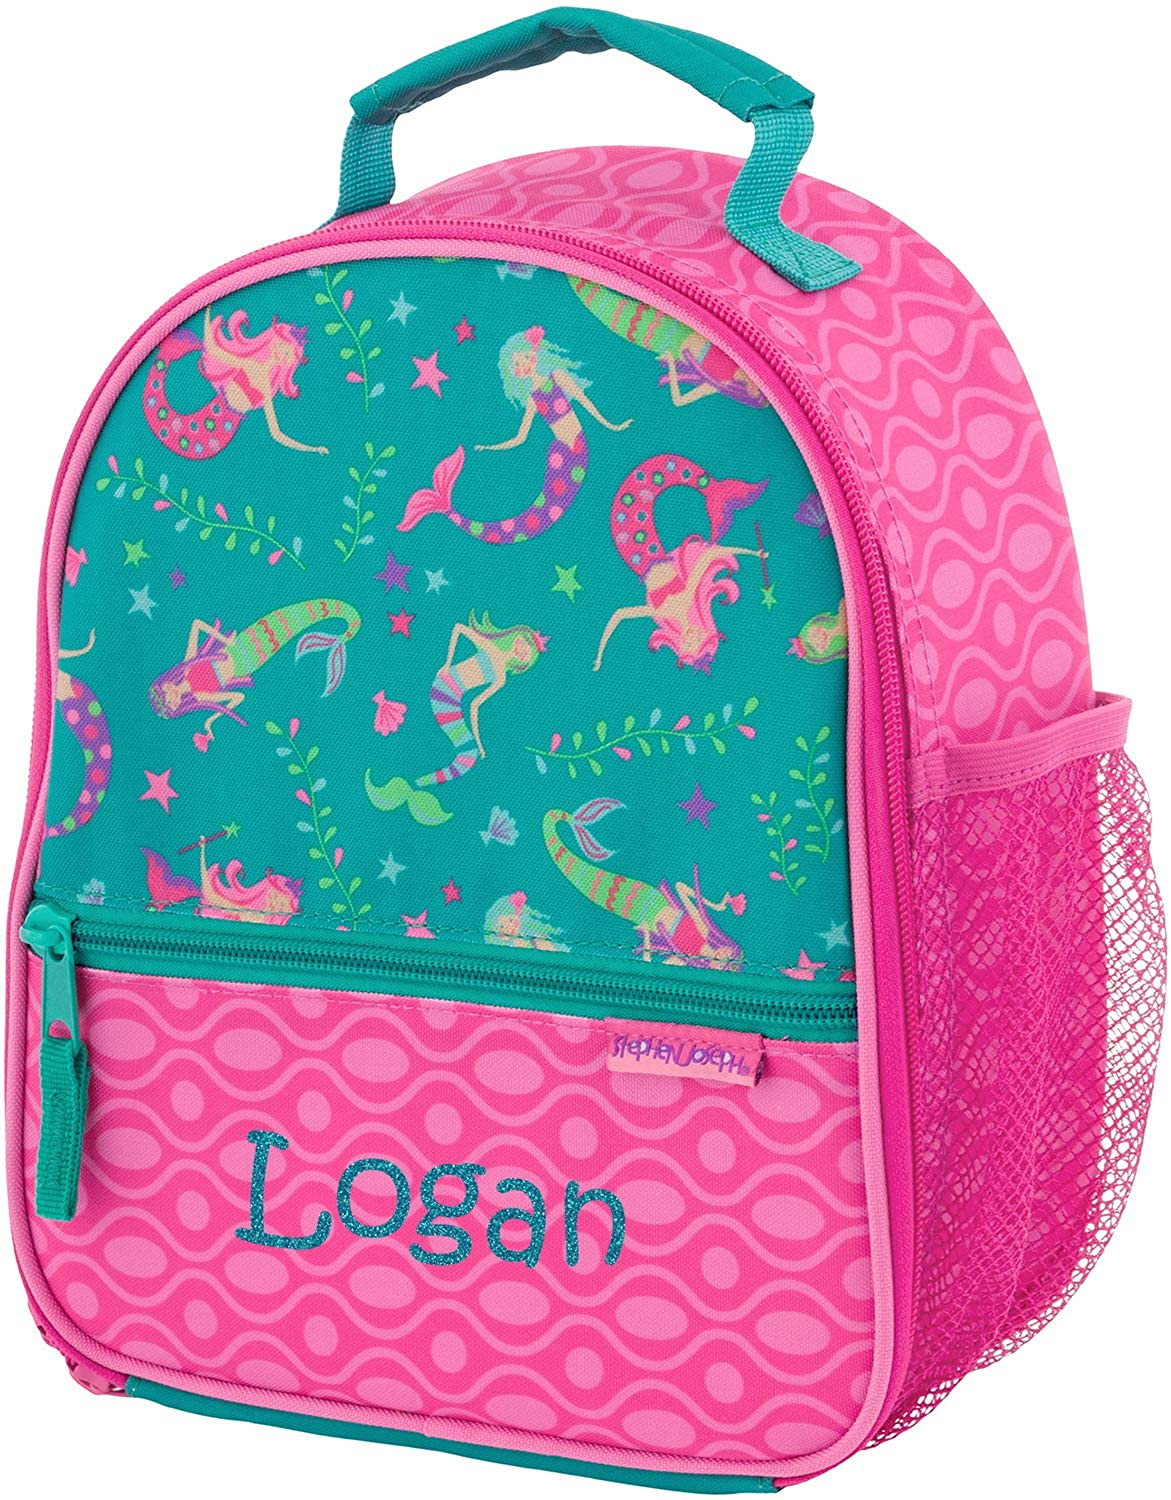 Monogrammed Me Personalized All Over Print Lunch Box, Pink Mermaid, with Custom Glitter Vinyl Name